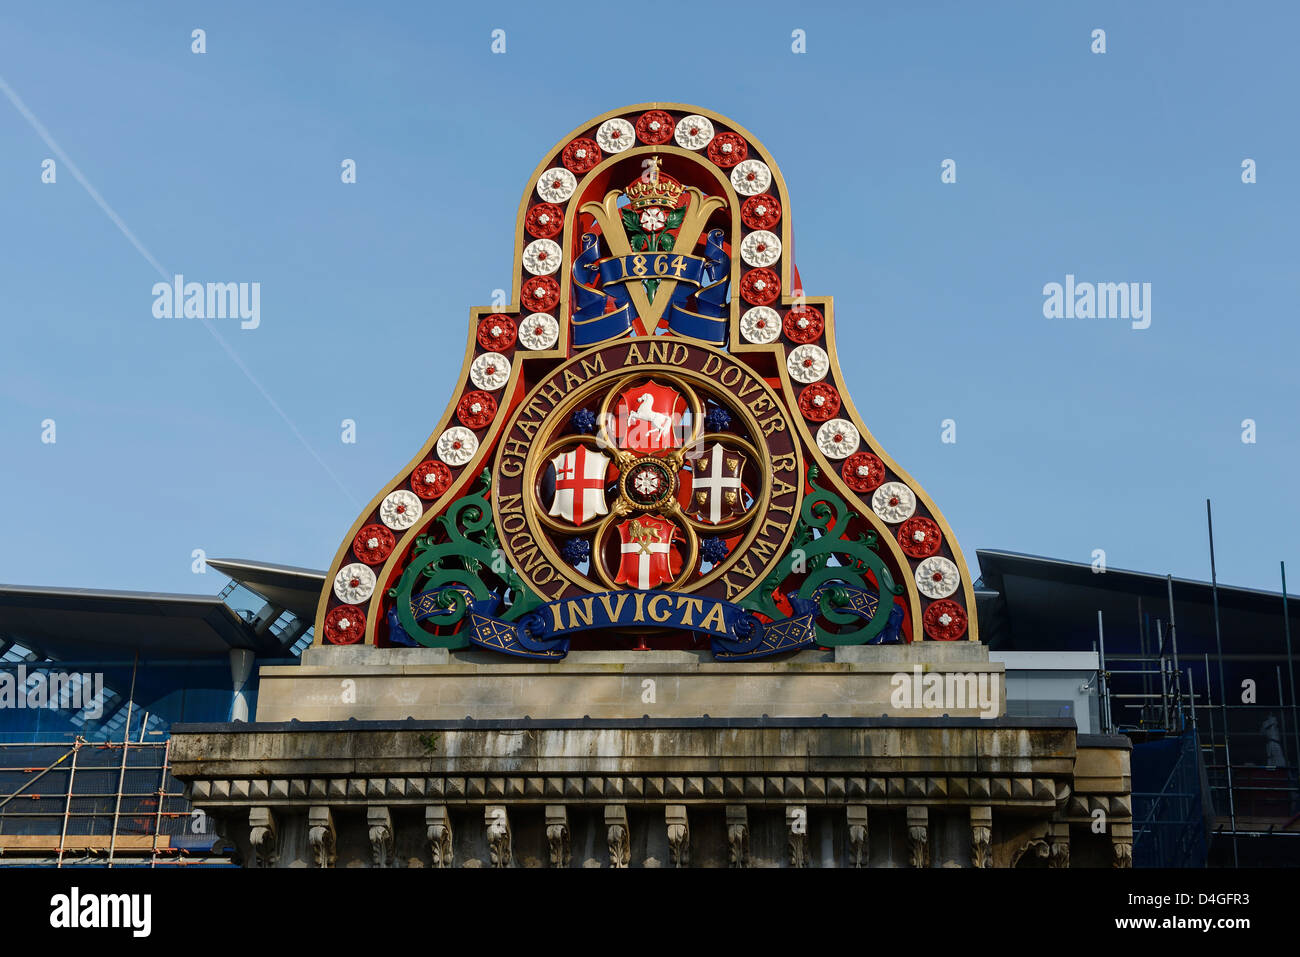 Architectural detail on Blackfriars railway bridge London UK - Stock Image